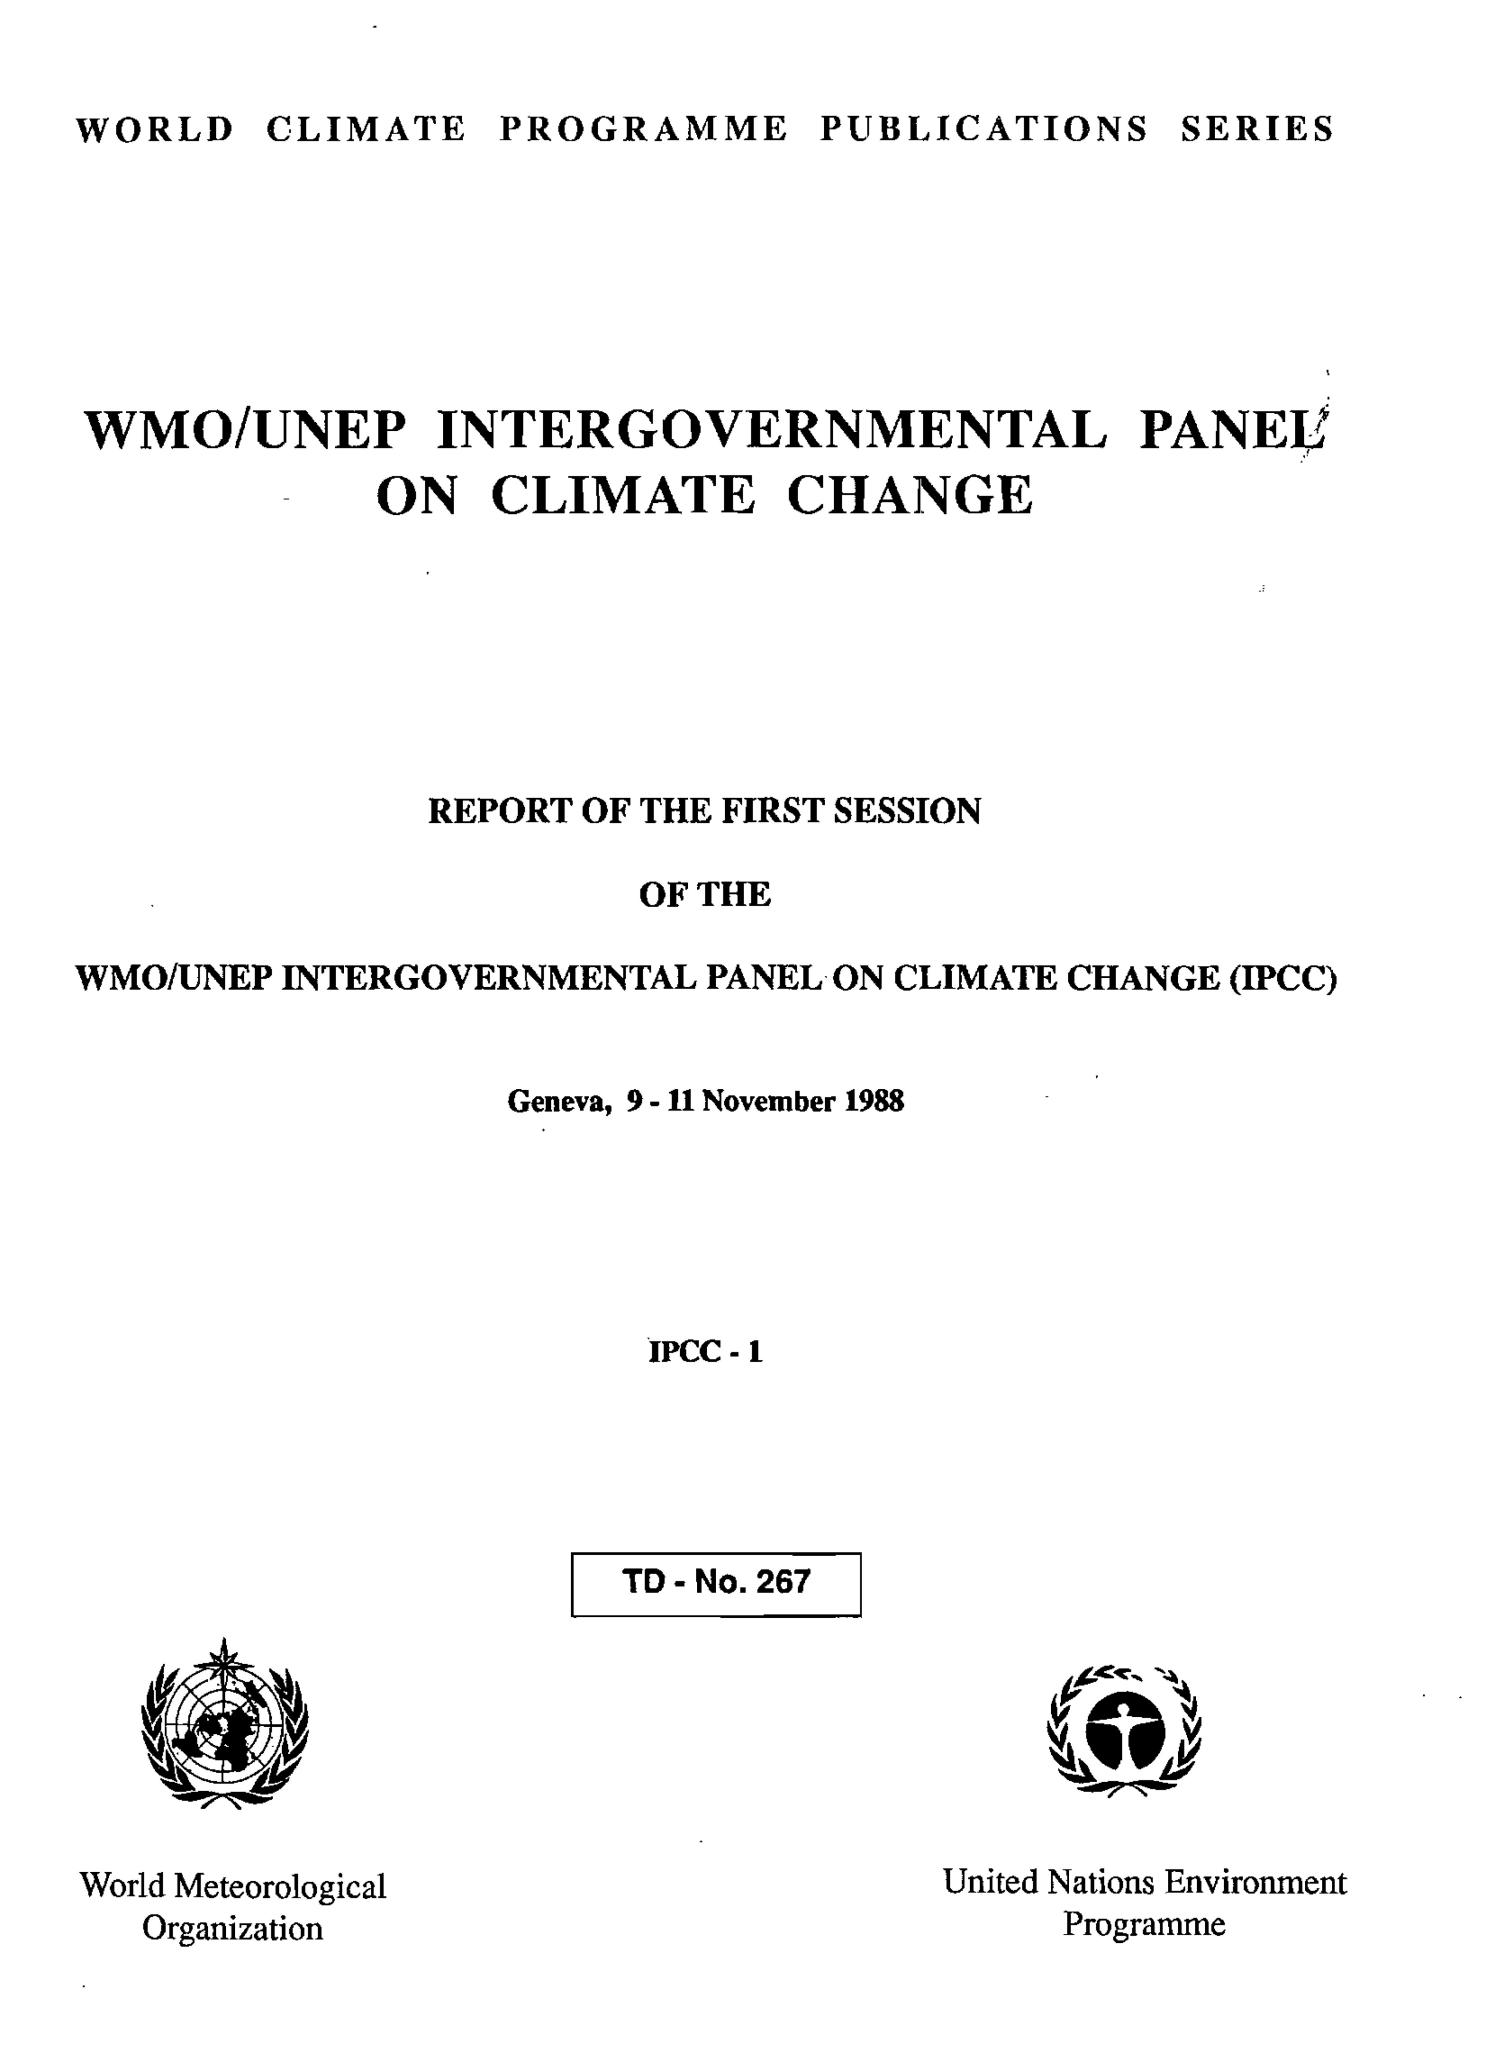 Report of the First Session of the WMO/UNEP Intergovernmental Panel on Climate Change (IPCC)                                                                                                      Front Cover